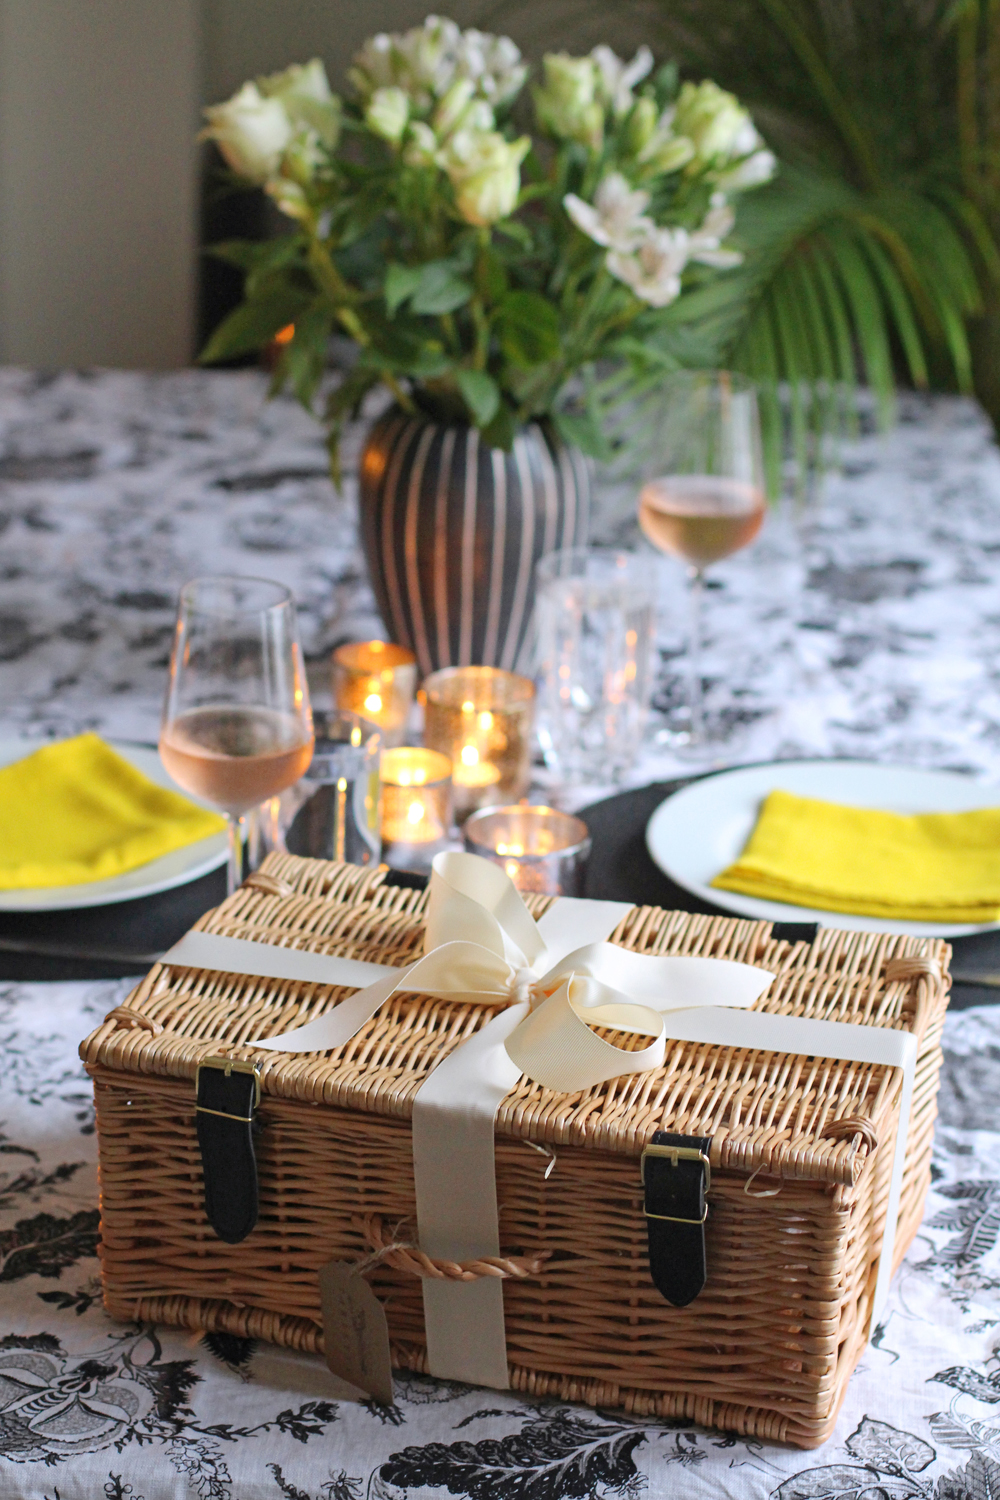 Tariette French Hampers - London lifestyle blog